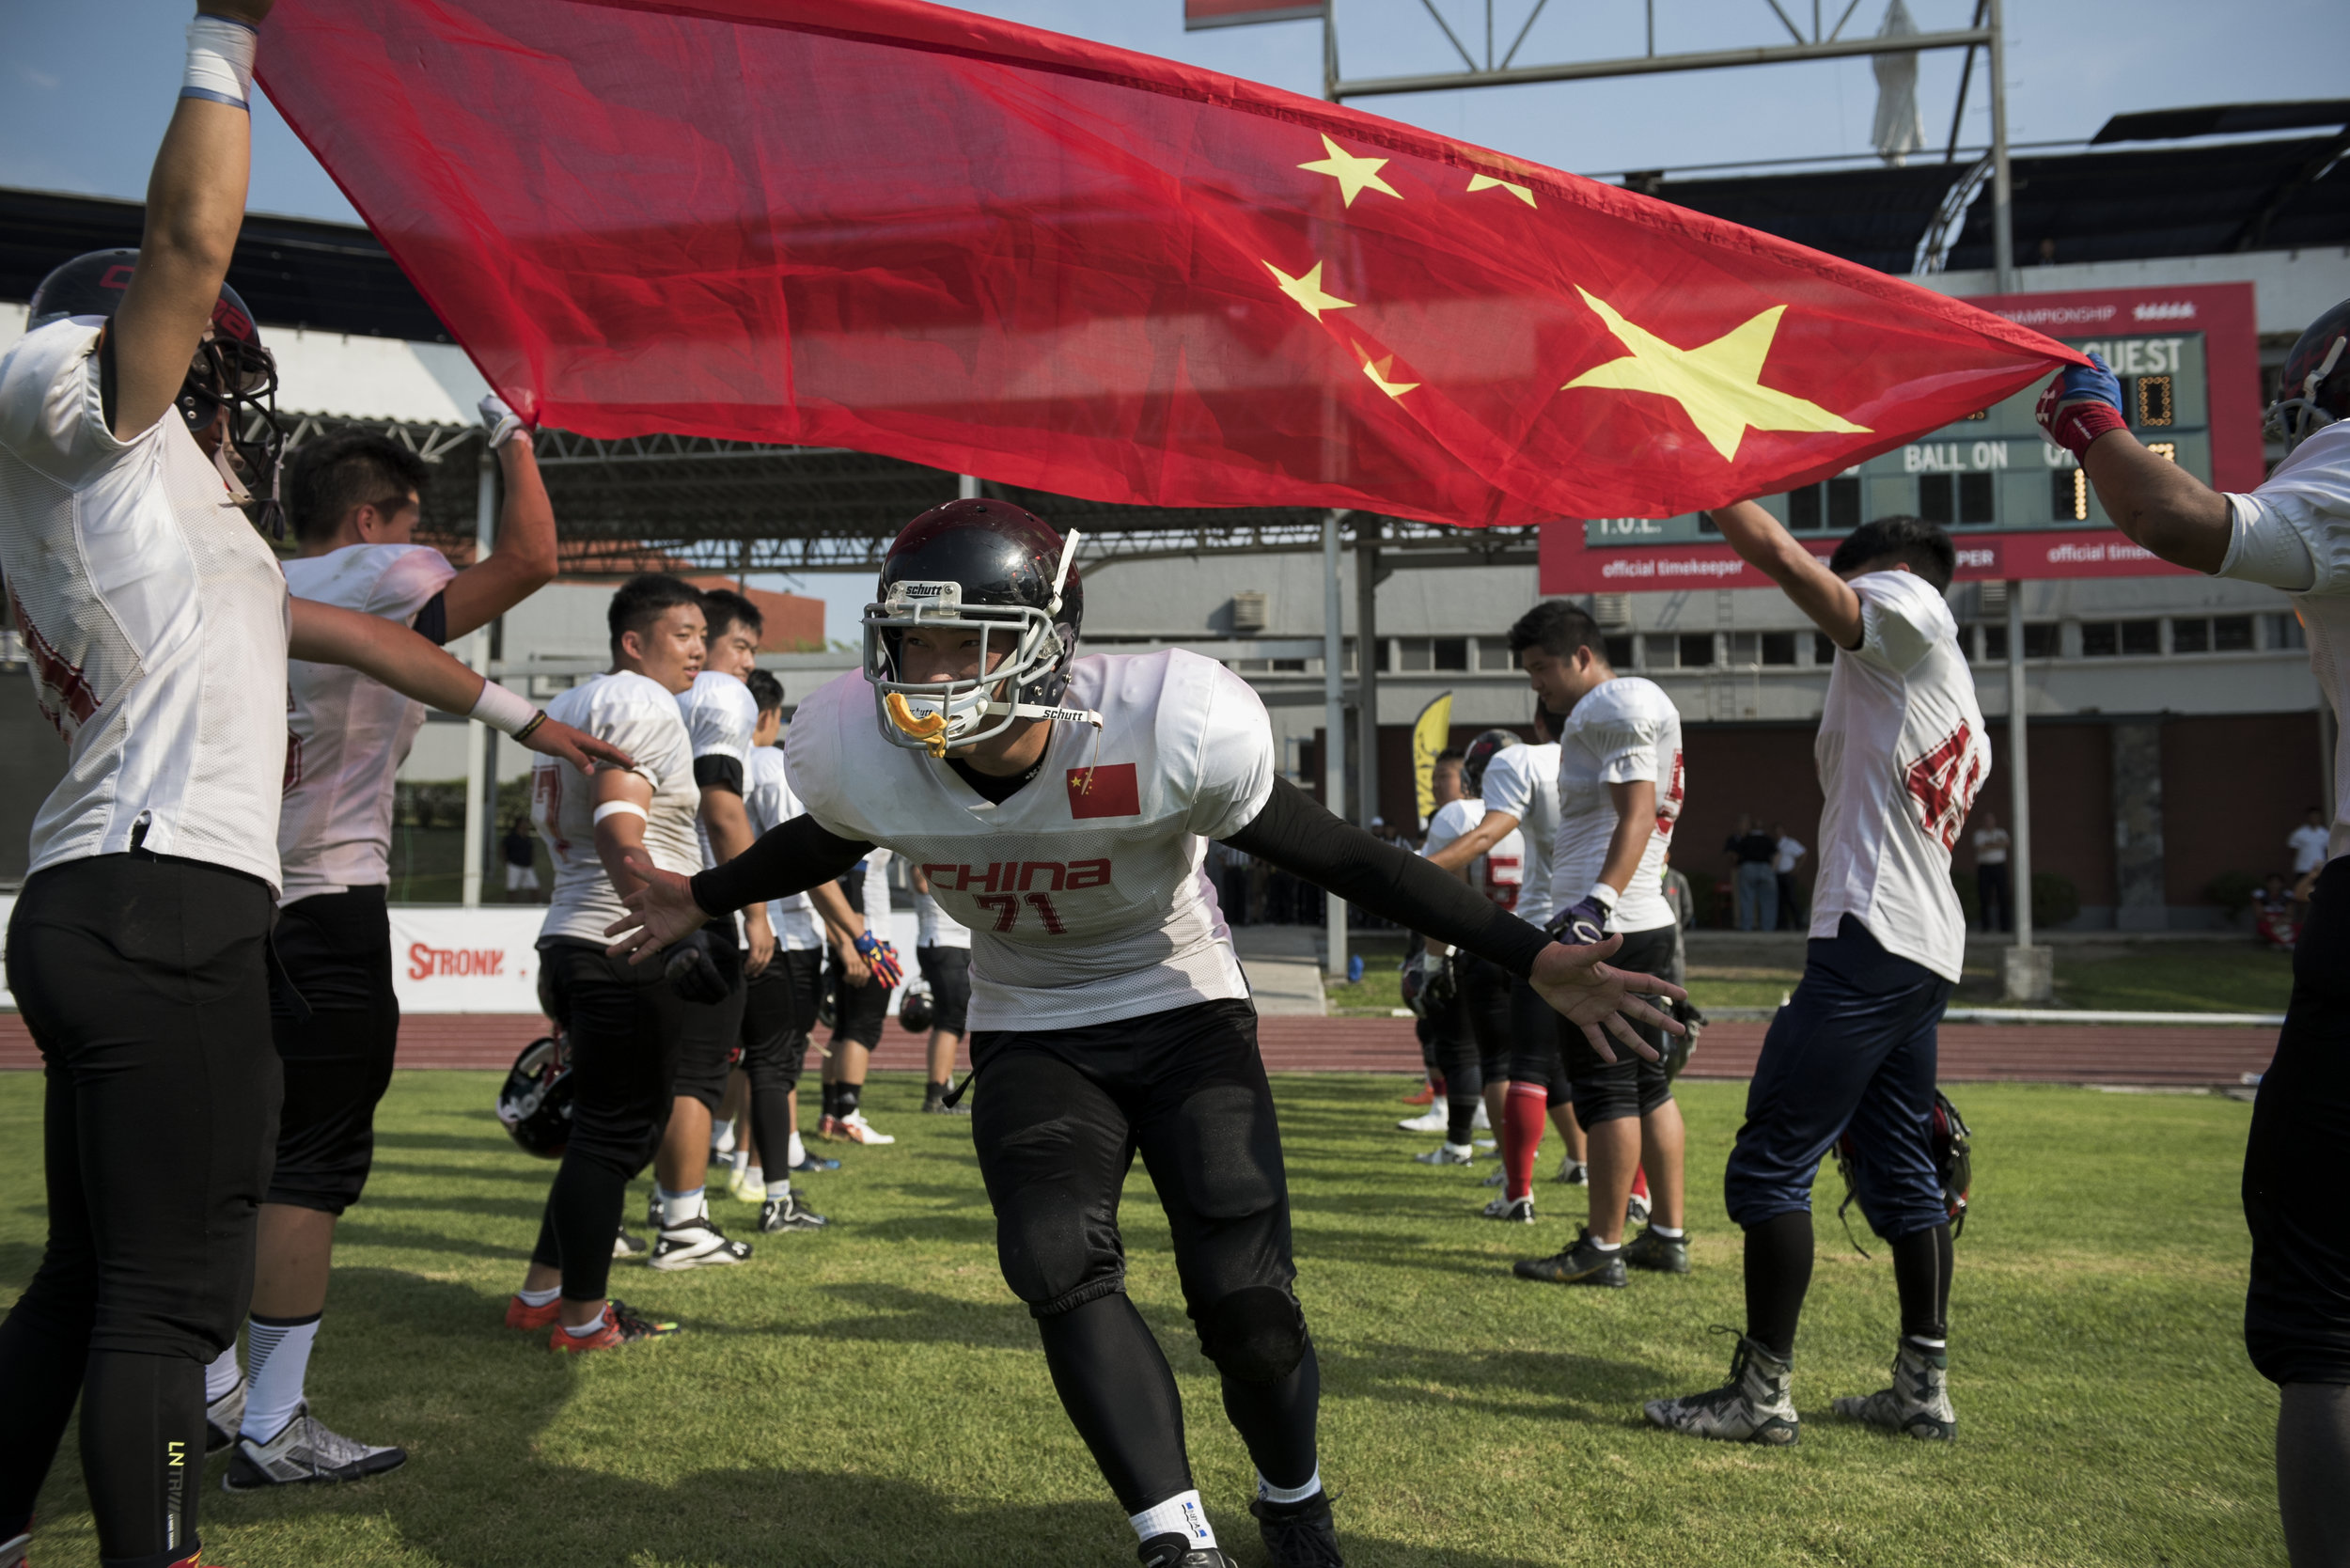 Chinese offensive lineman Sai Quan takes the field for the team's final game of the 2016 American Football World University Championship against Japan on June 10, 2016 in Monterrey, Mexico. American football has only been played in China for a few years and despite being outsized and playing against more experienced opponents, the Chinese players were lauded for their tenacity and fearlessness.